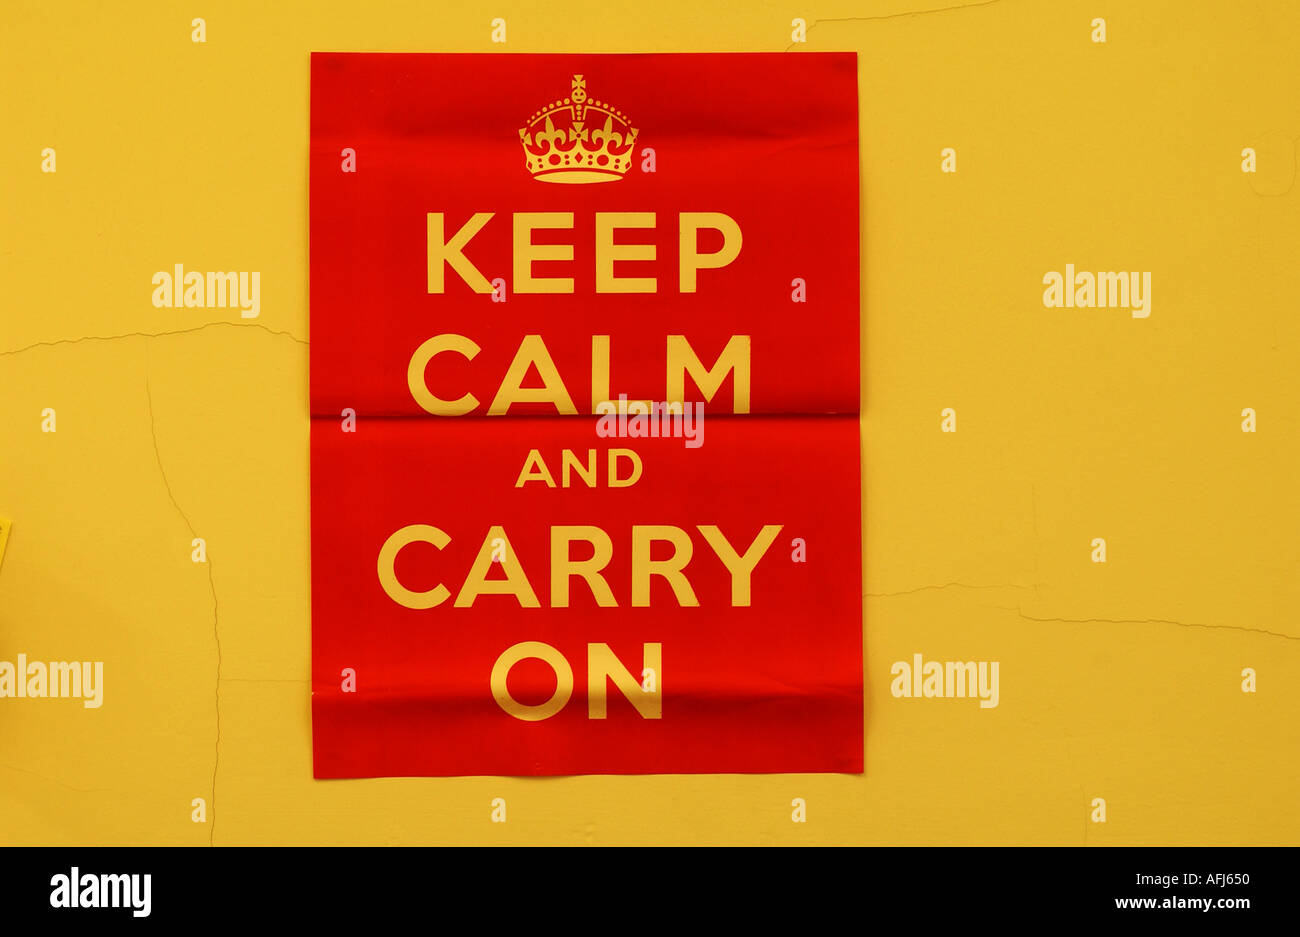 Keep Calm And Carry On Stock Photos & Keep Calm And Carry On Stock ...